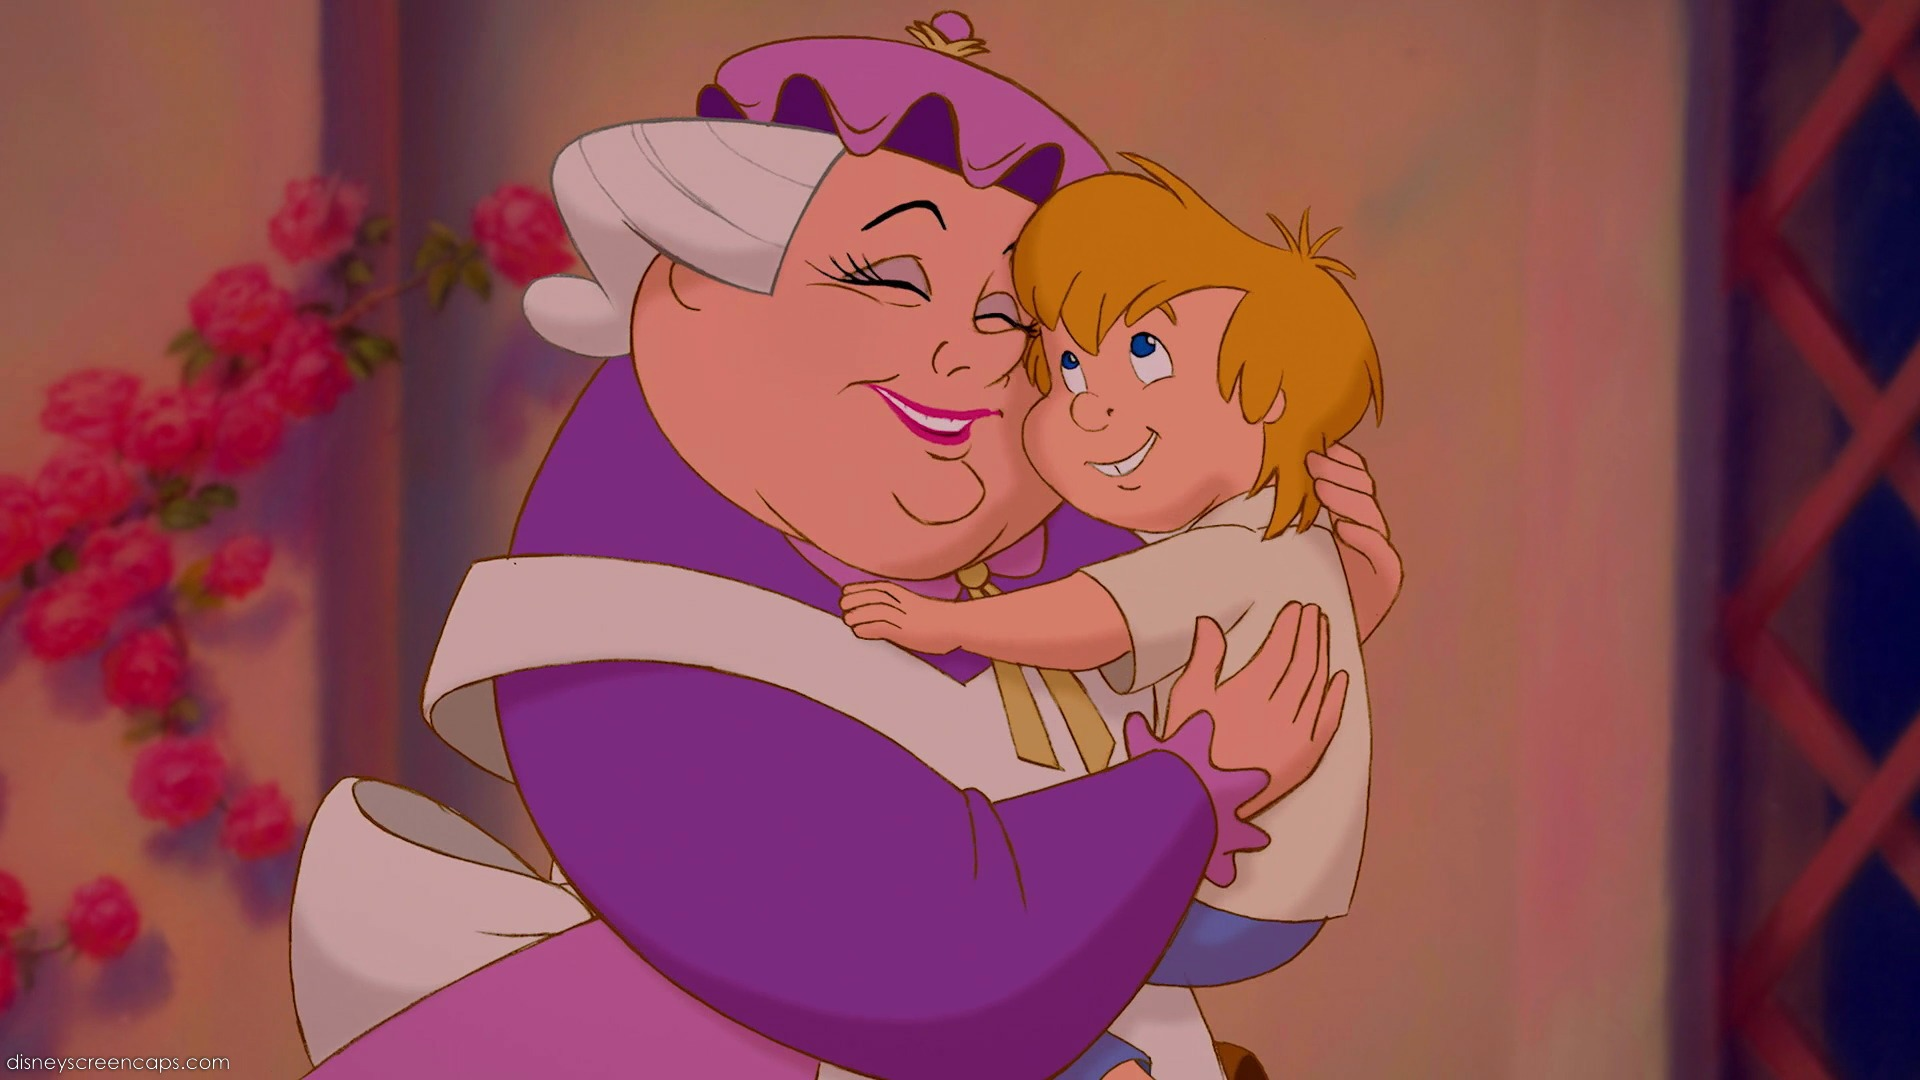 9 Mrs Potts Is Chips Mom Yet The Woman We See At End Of Movie Seems Too Old To Be A Mother Such Young Boy